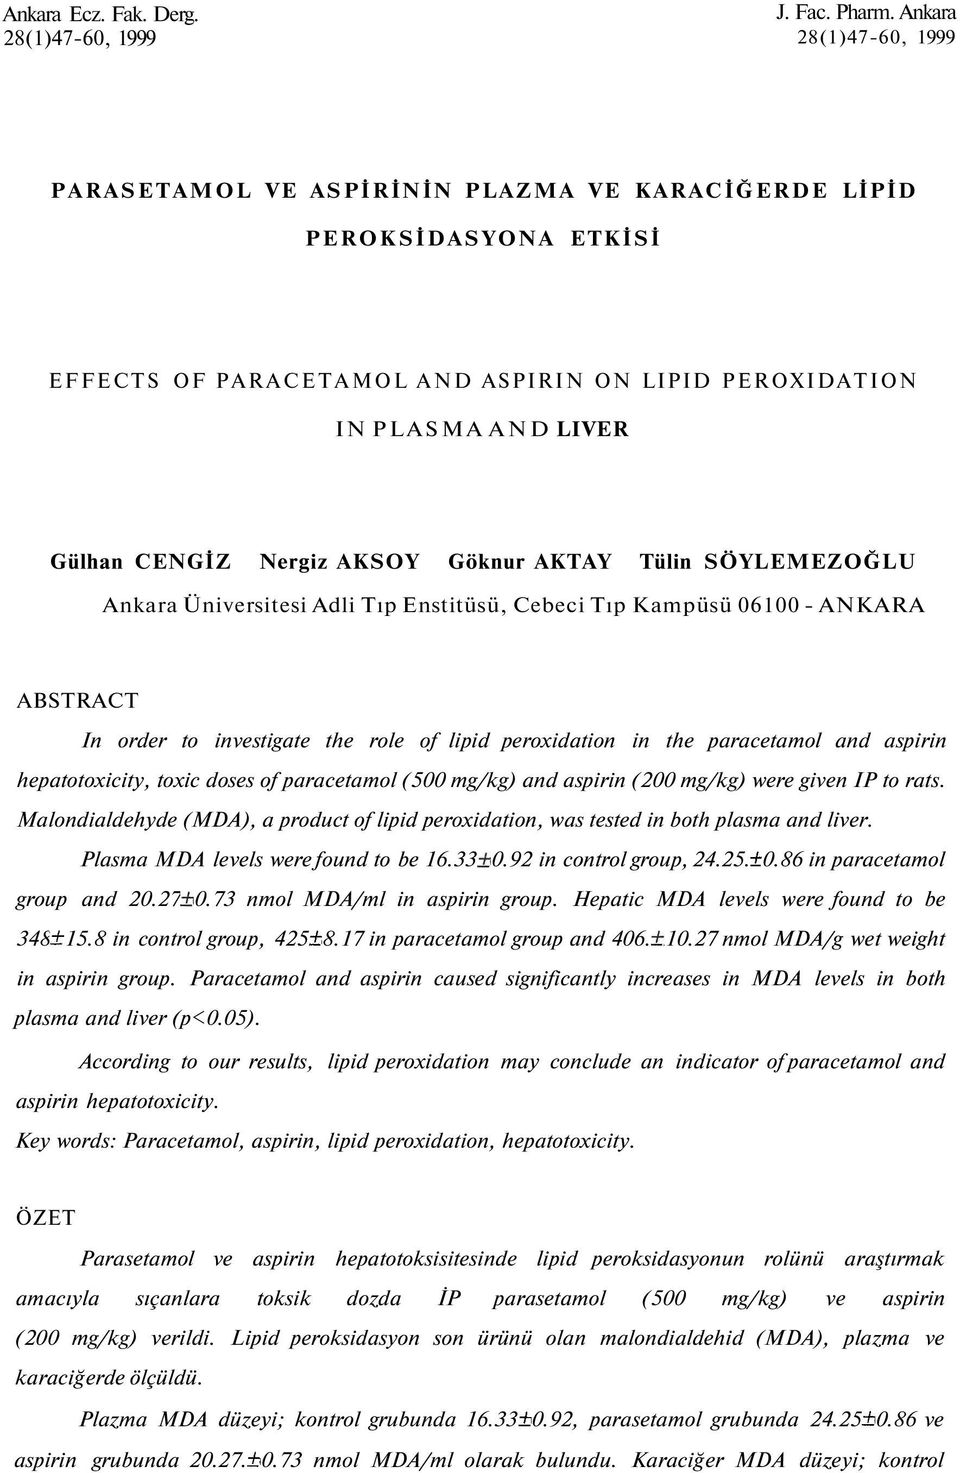 AKSOY Göknur AKTAY Tülin SÖYLEMEZOĞLU Ankara Üniversitesi Adli Tıp Enstitüsü, Cebeci Tıp Kampüsü 06100 - ANKARA ABSTRACT In order to investigate the role of lipid peroxidation in the paracetamol and